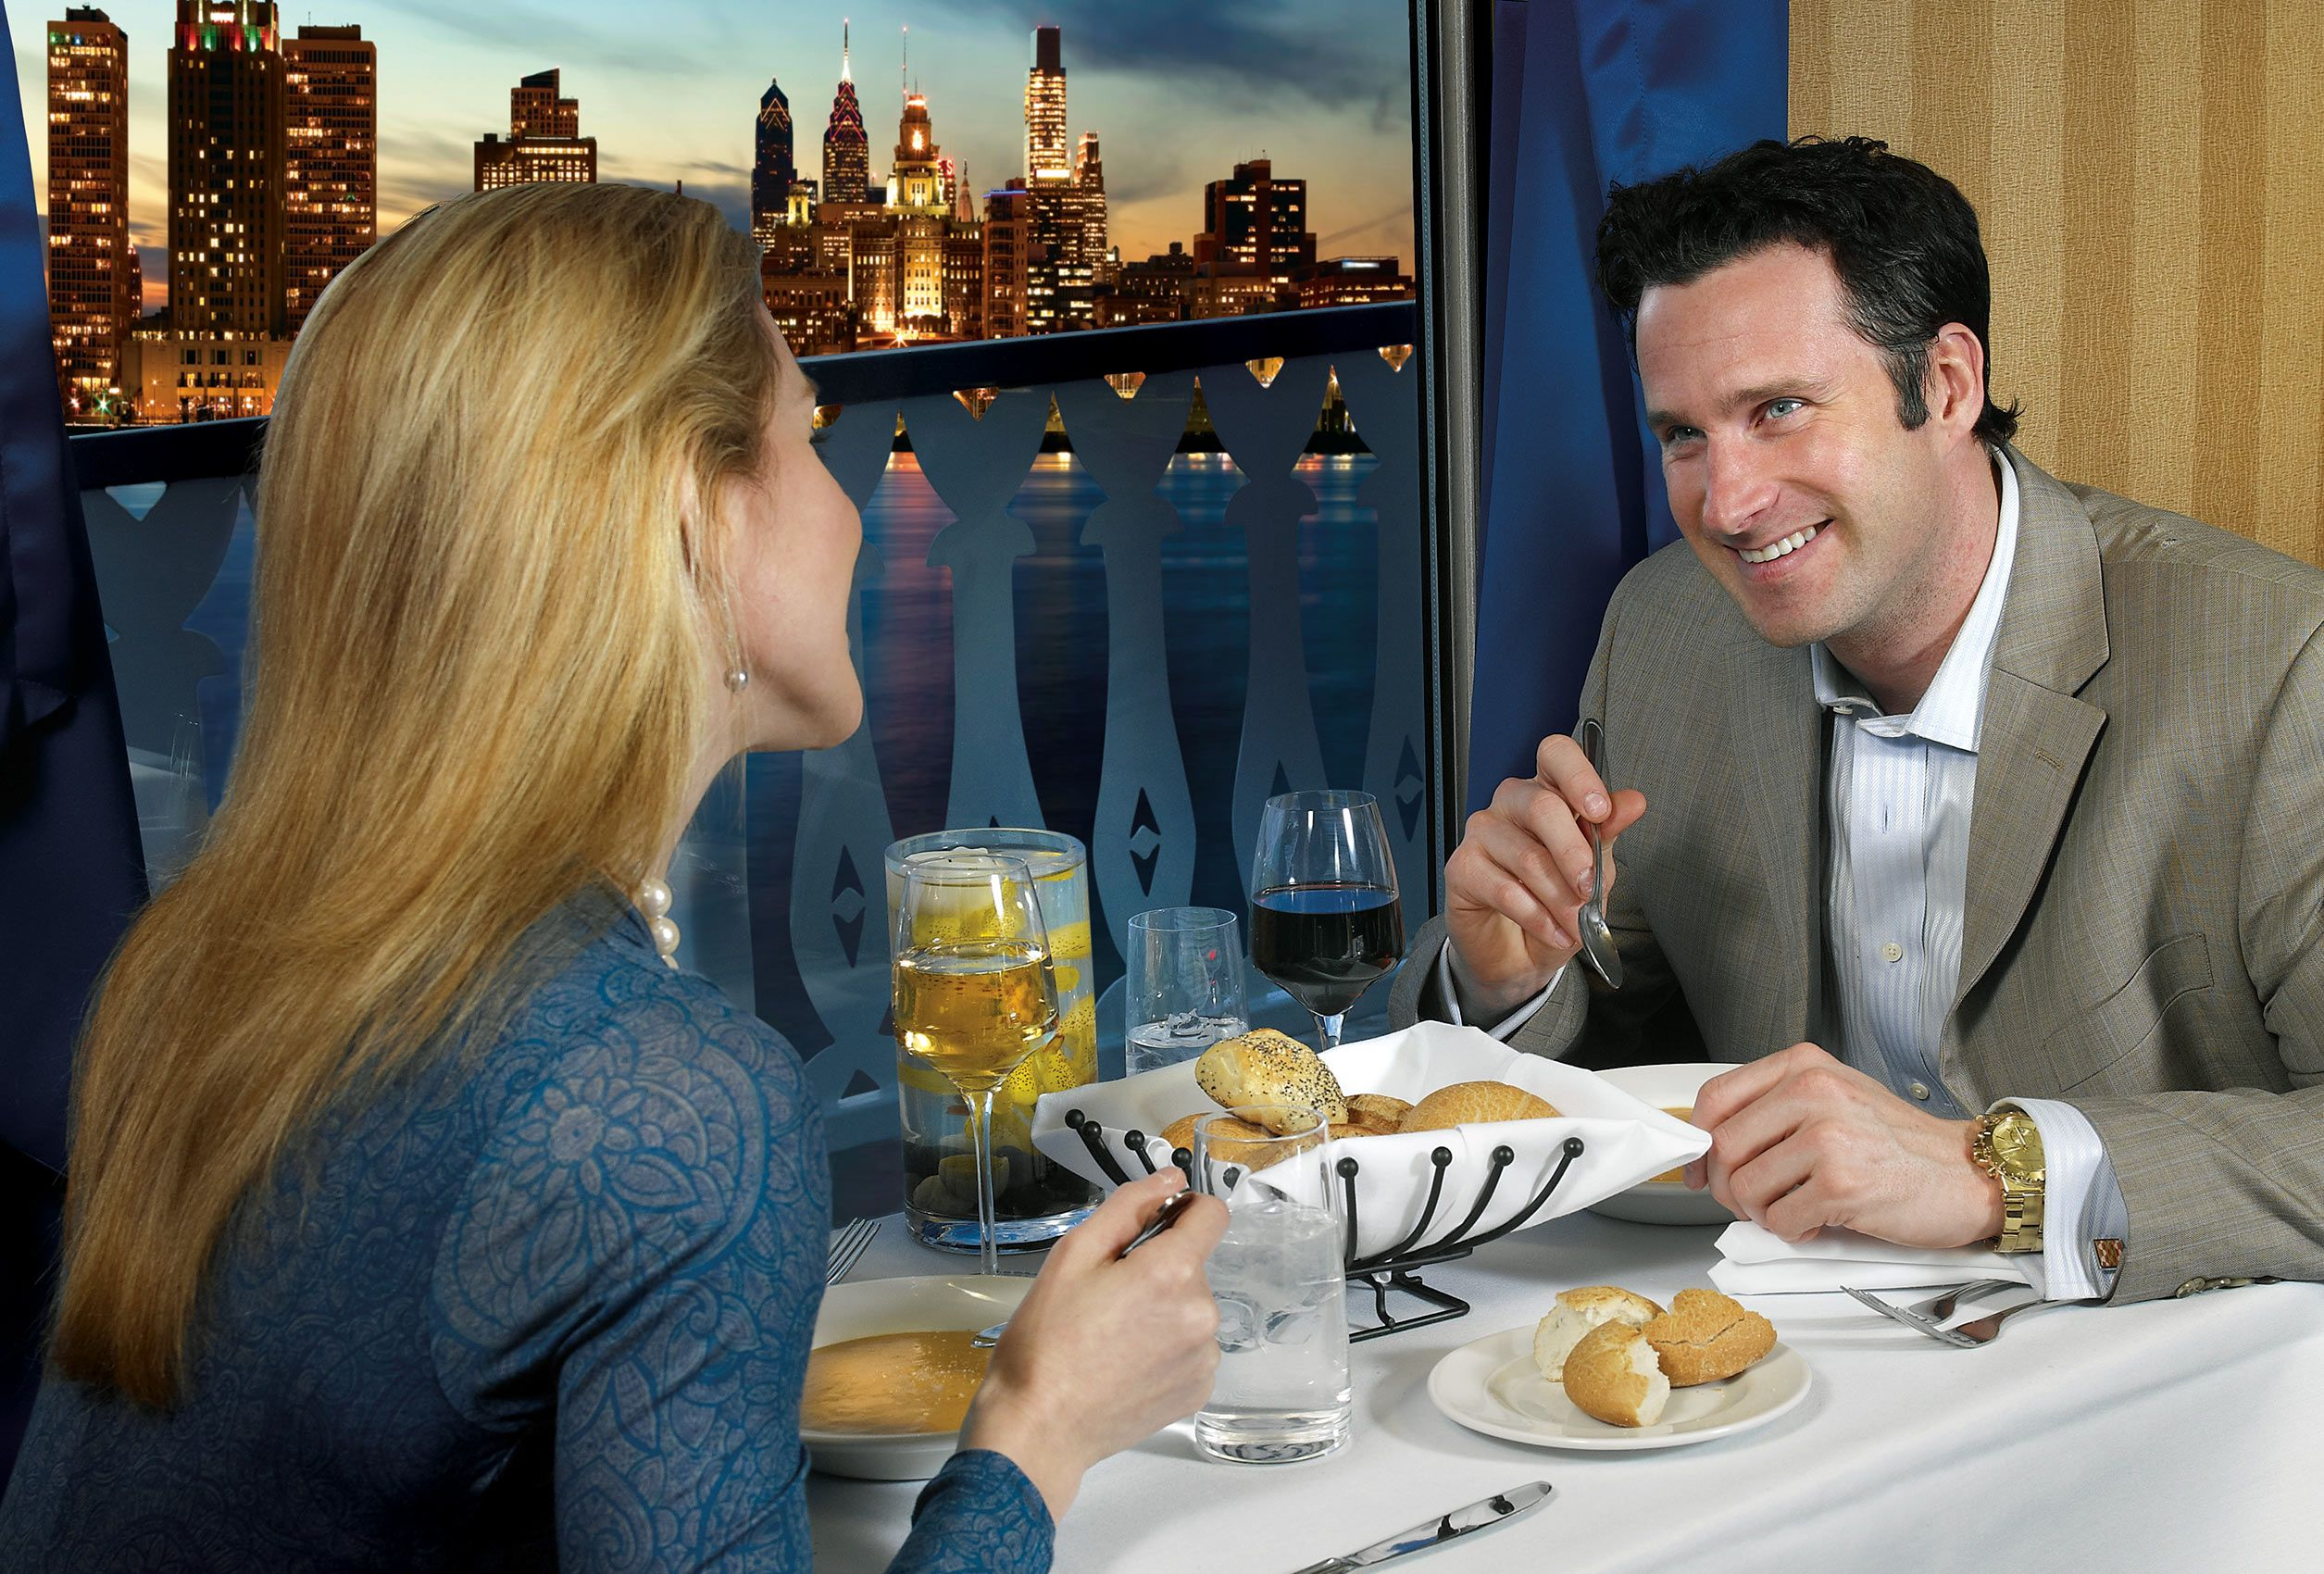 Couple-Dining_01.jpg